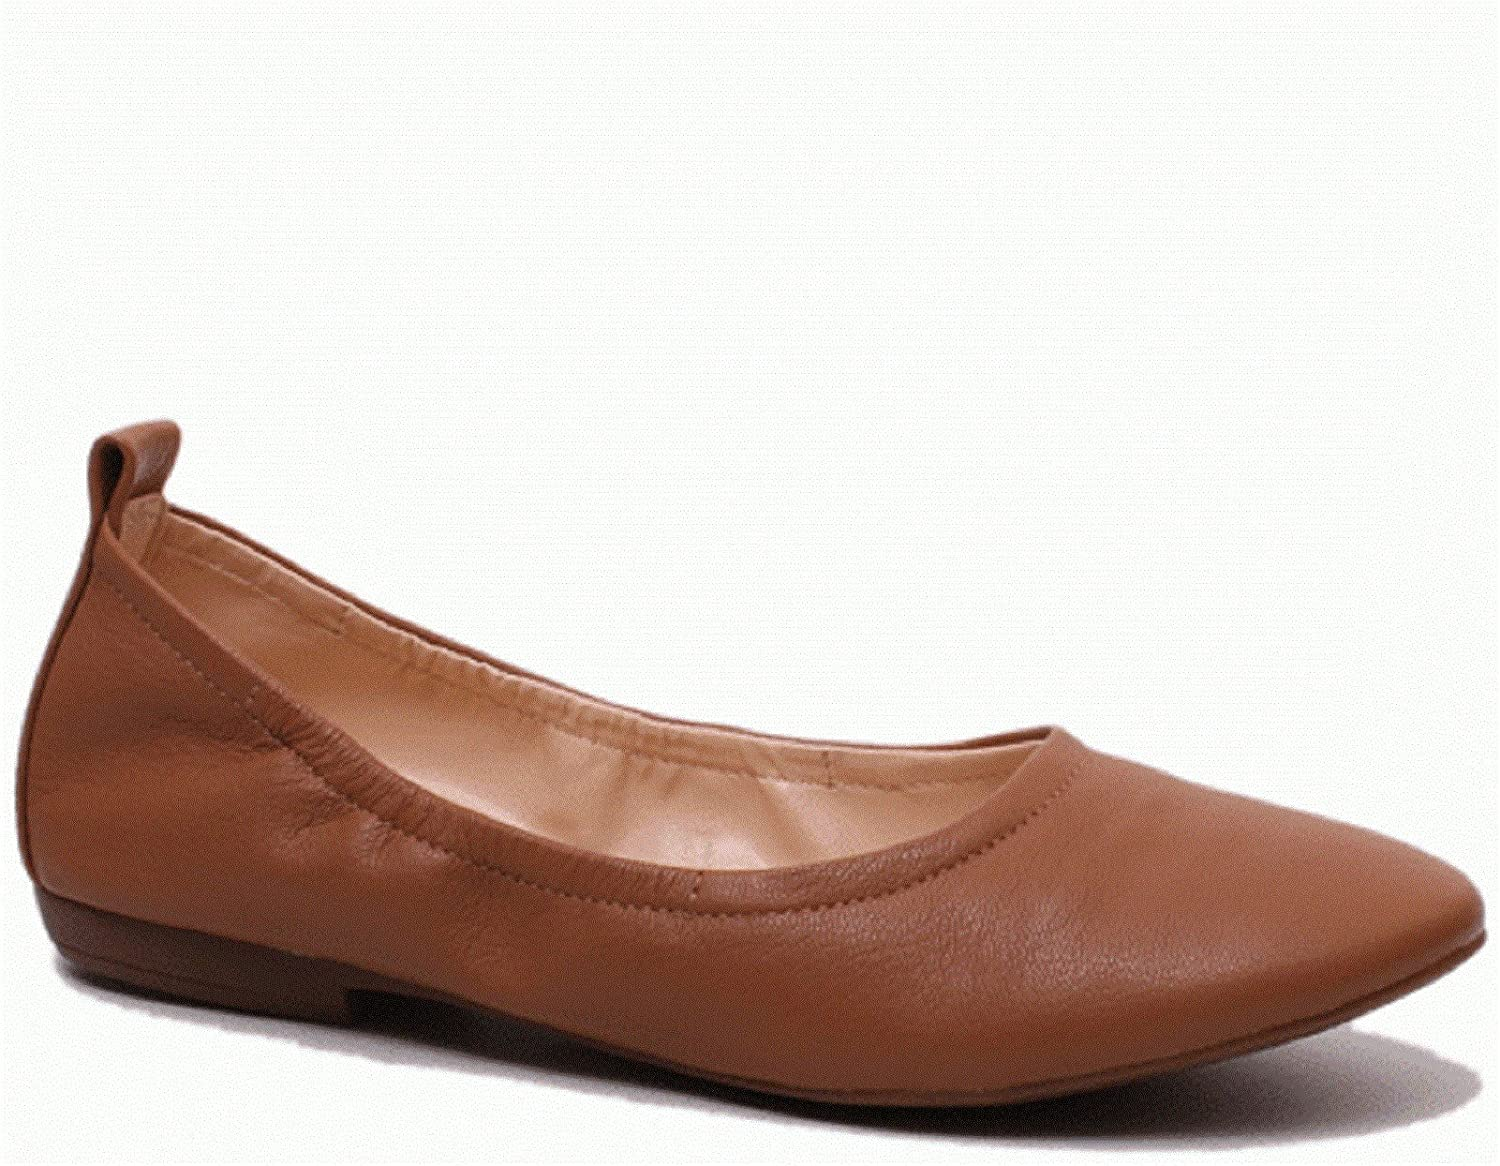 Nine West GARNHAM Beechnut Brown